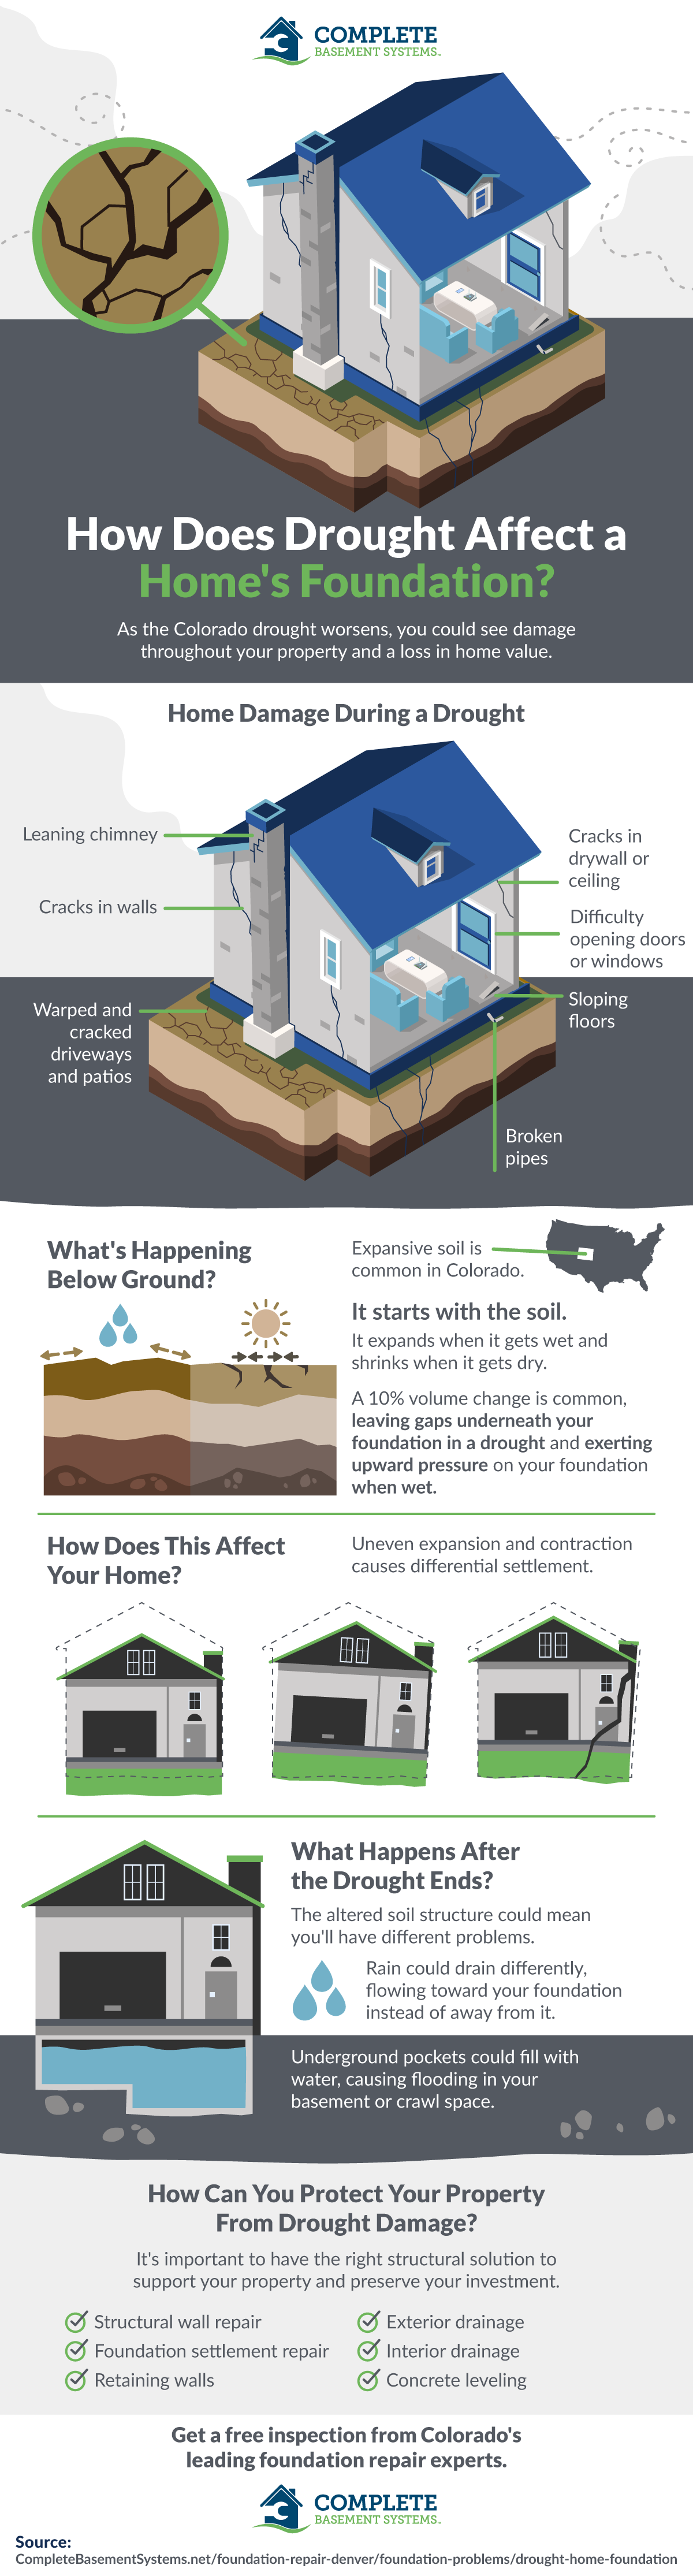 how-does-drought-affect-a-homes-foundation-infographic